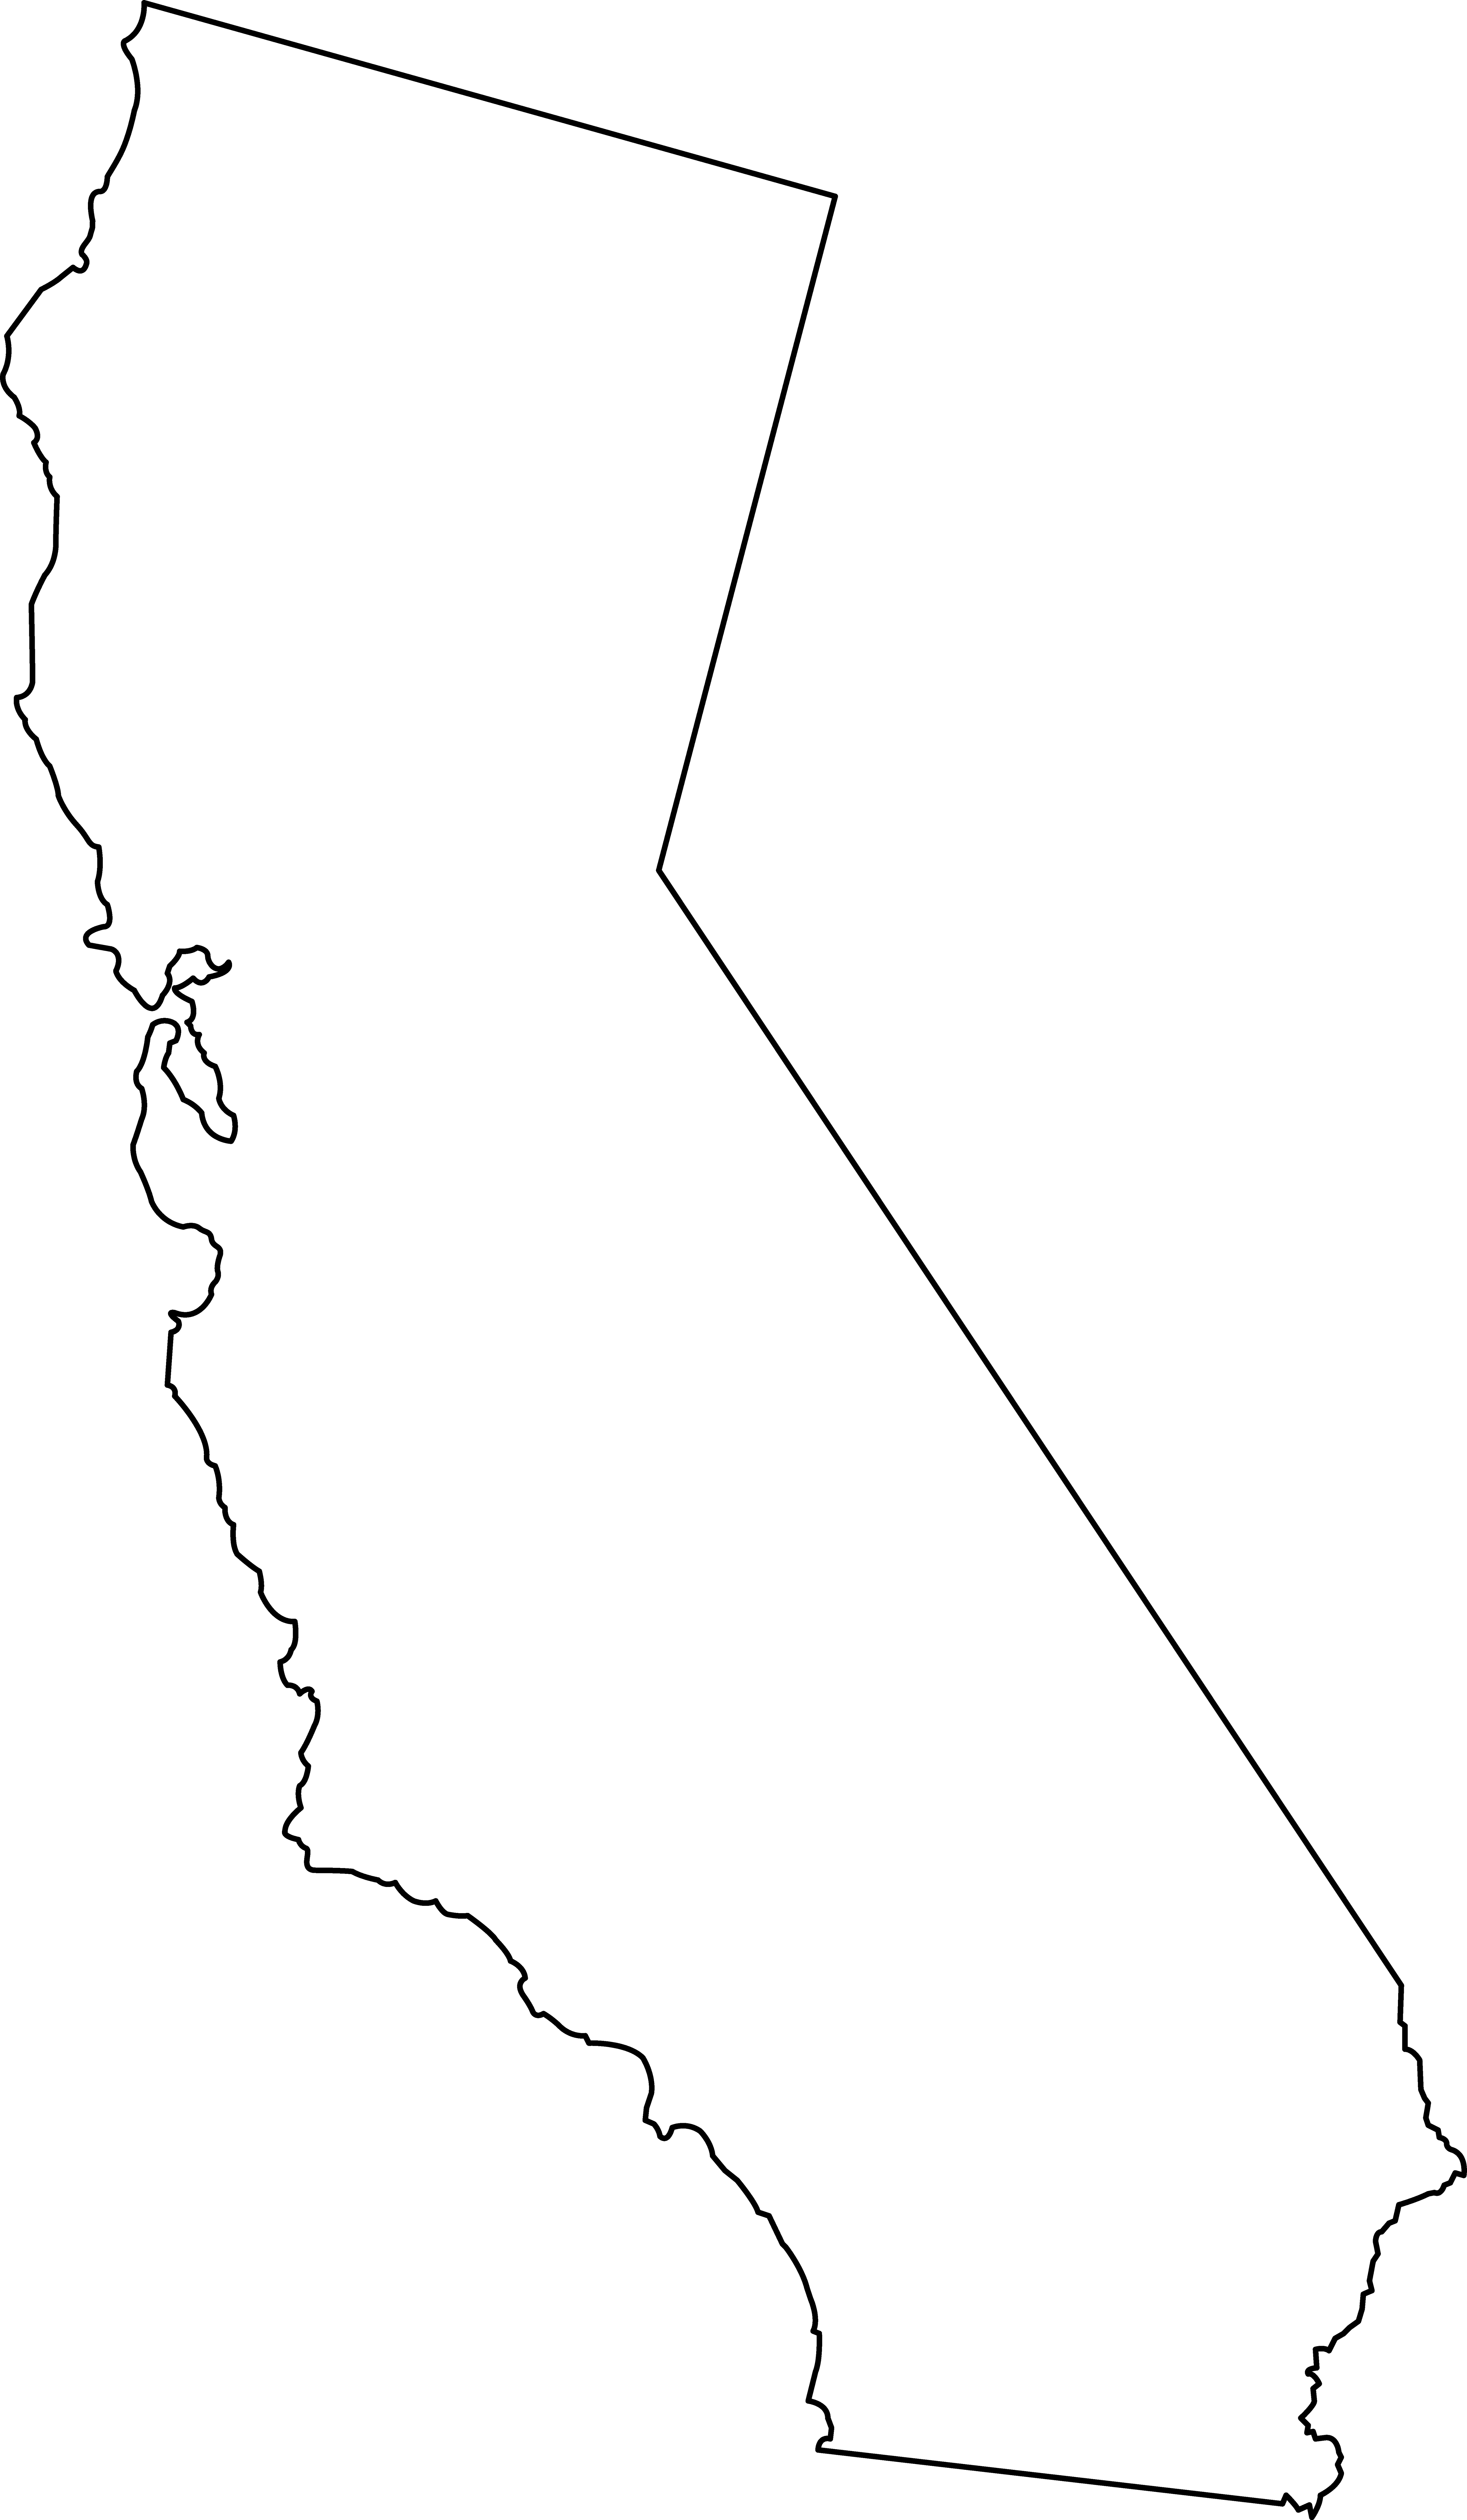 Flag free collection. California clipart silhouette